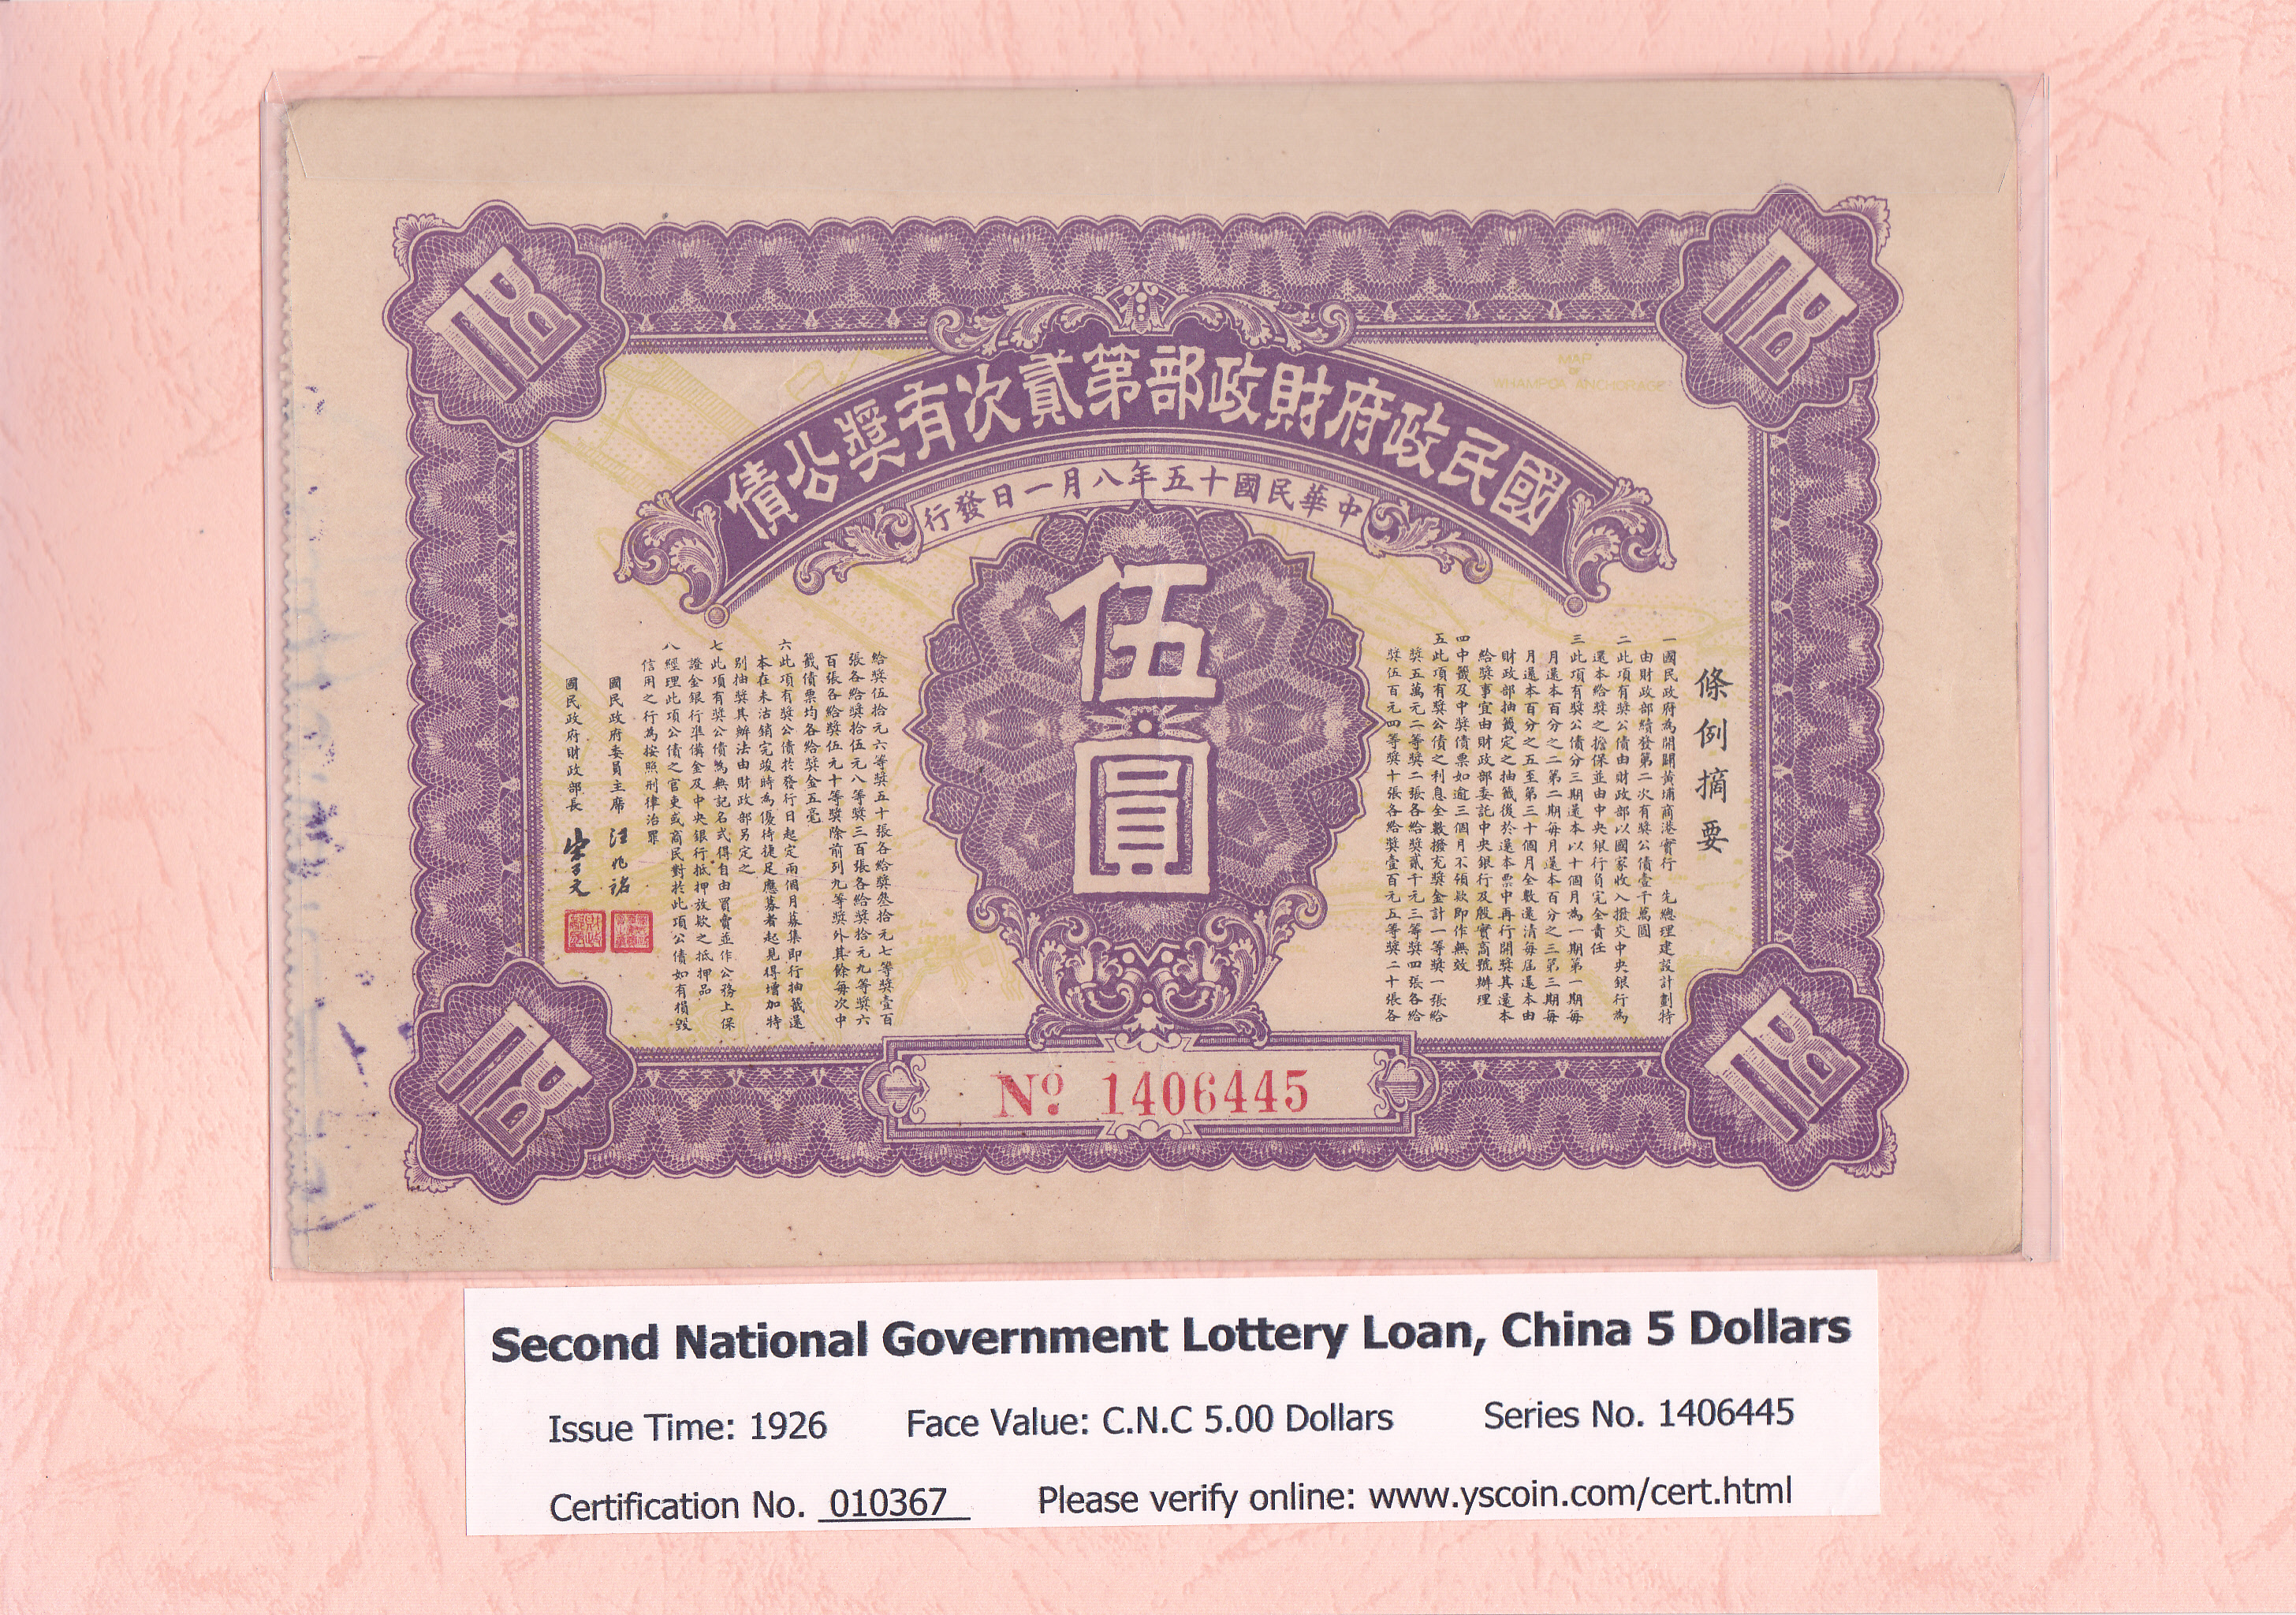 010367, Second National Government Lottery Loan, China 5 Dollars